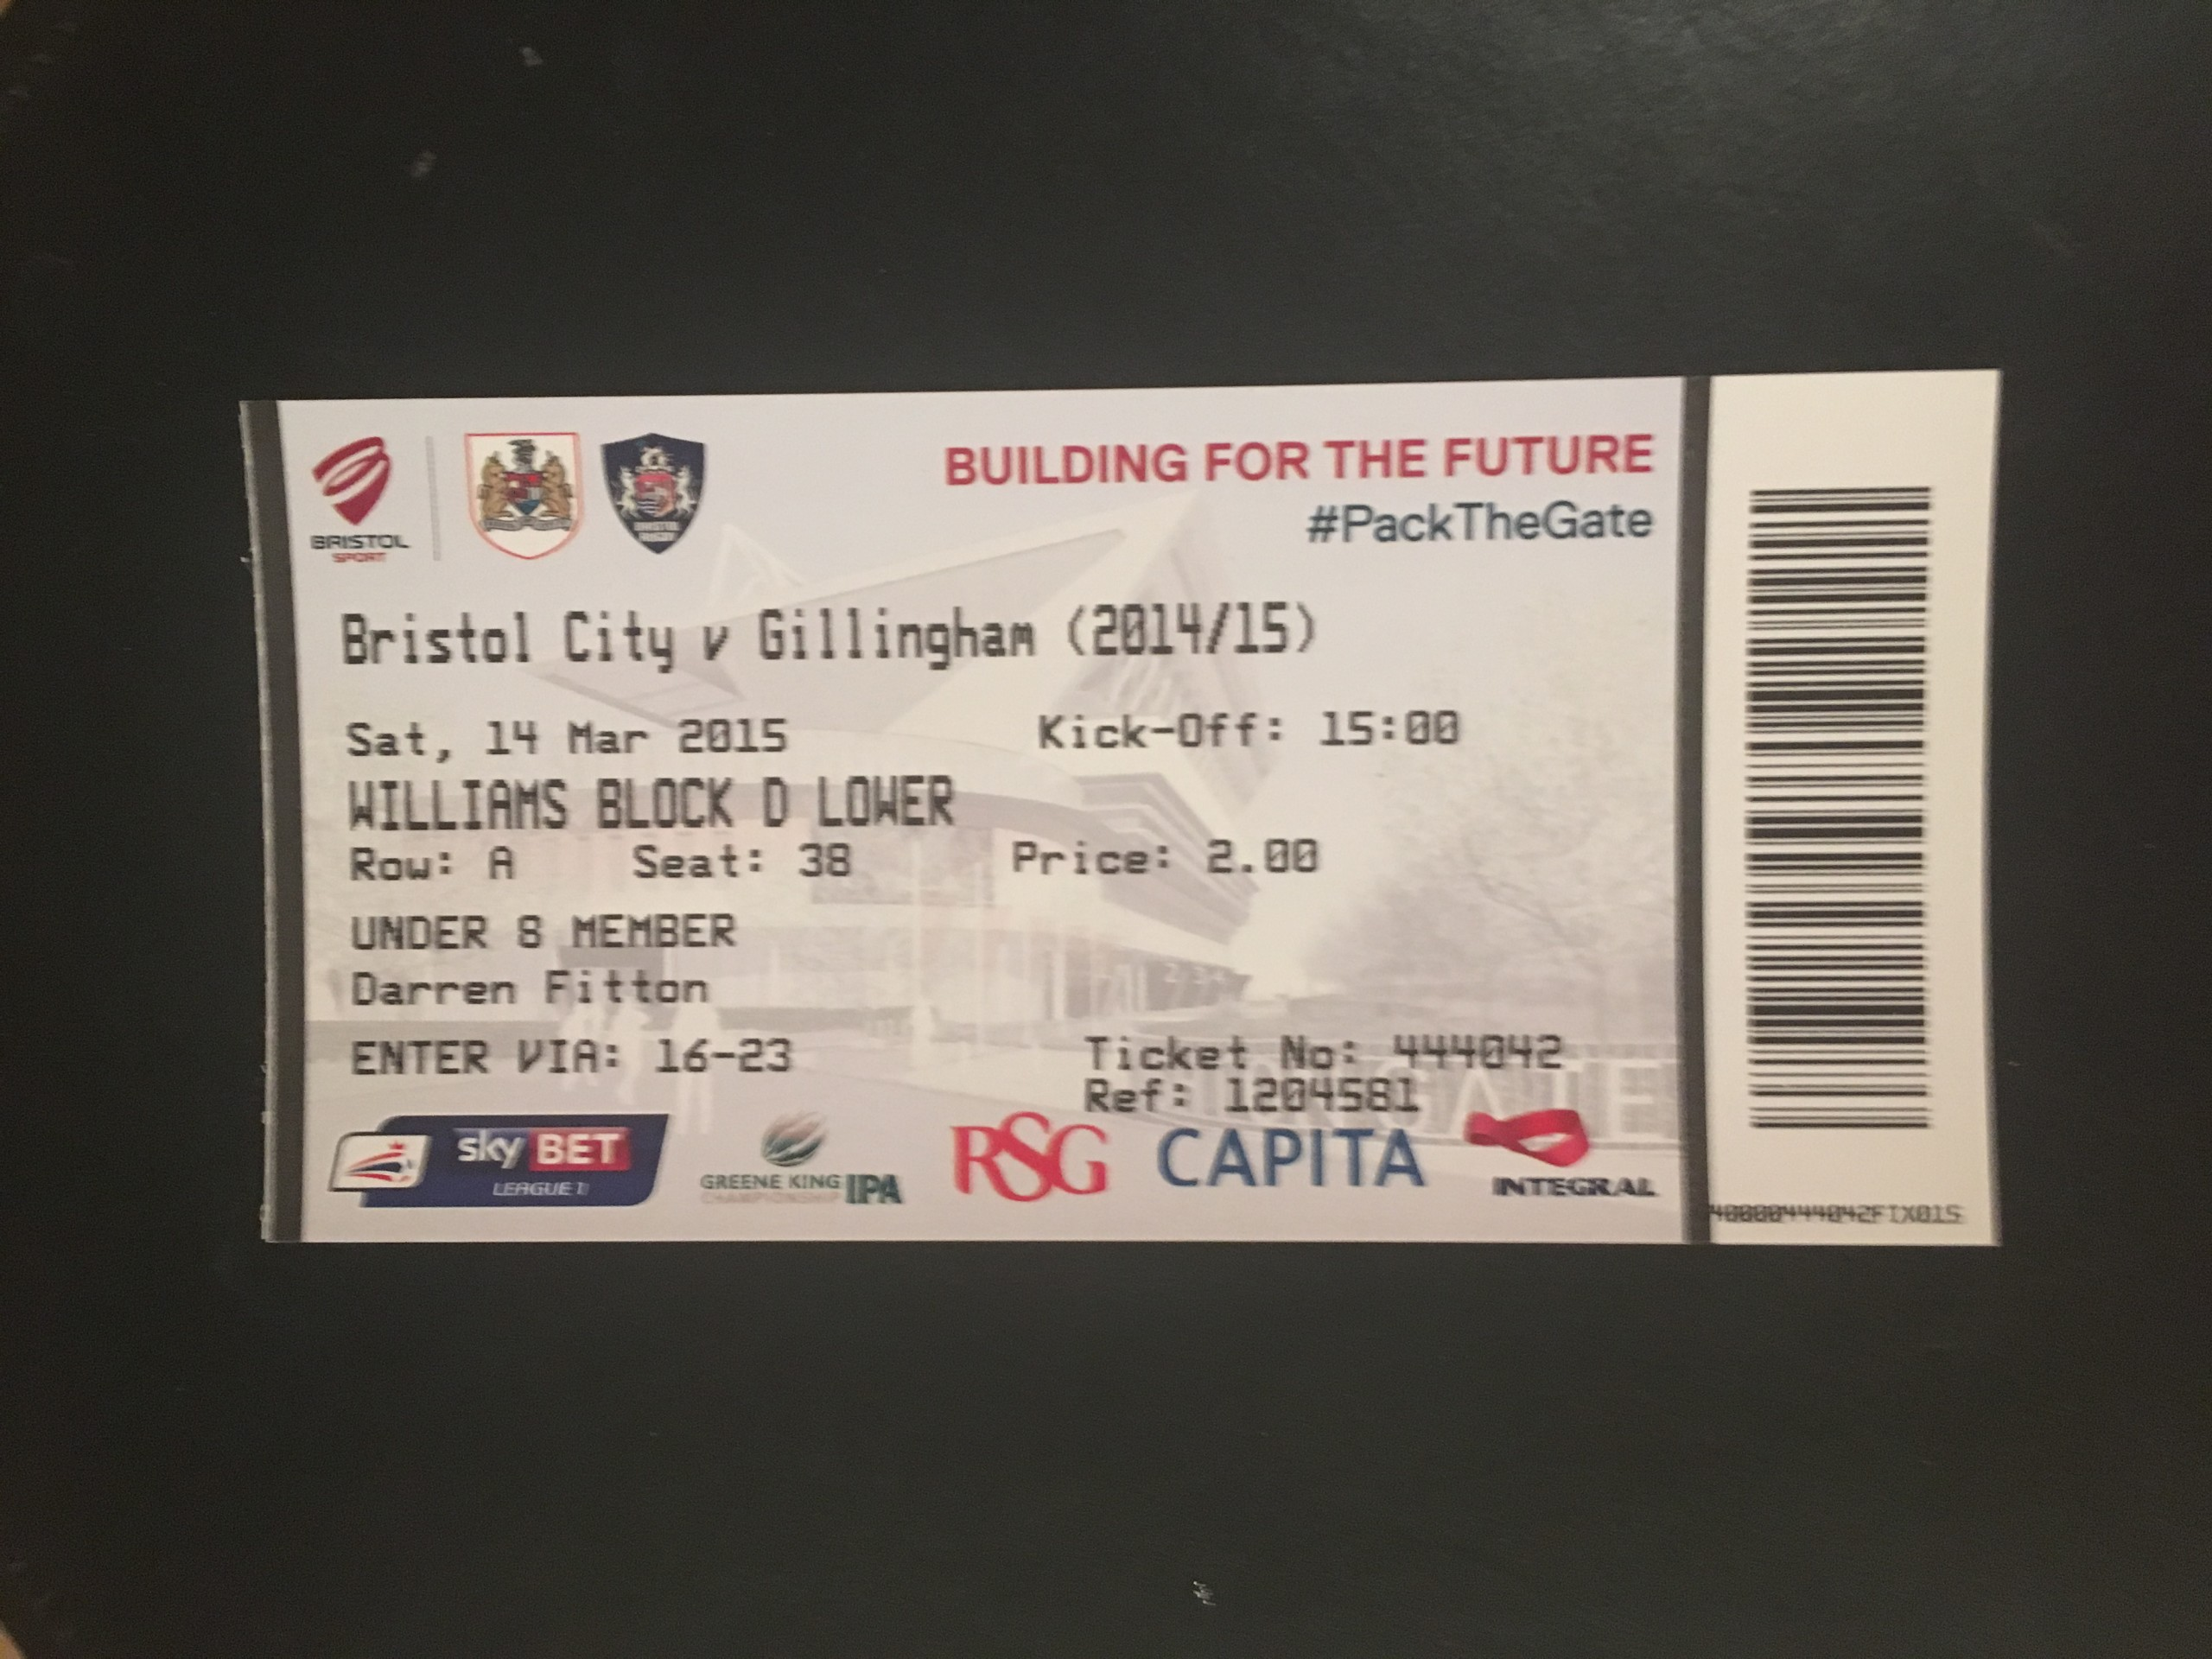 Bristol City v Gillingham 14-03-2015 Ticket